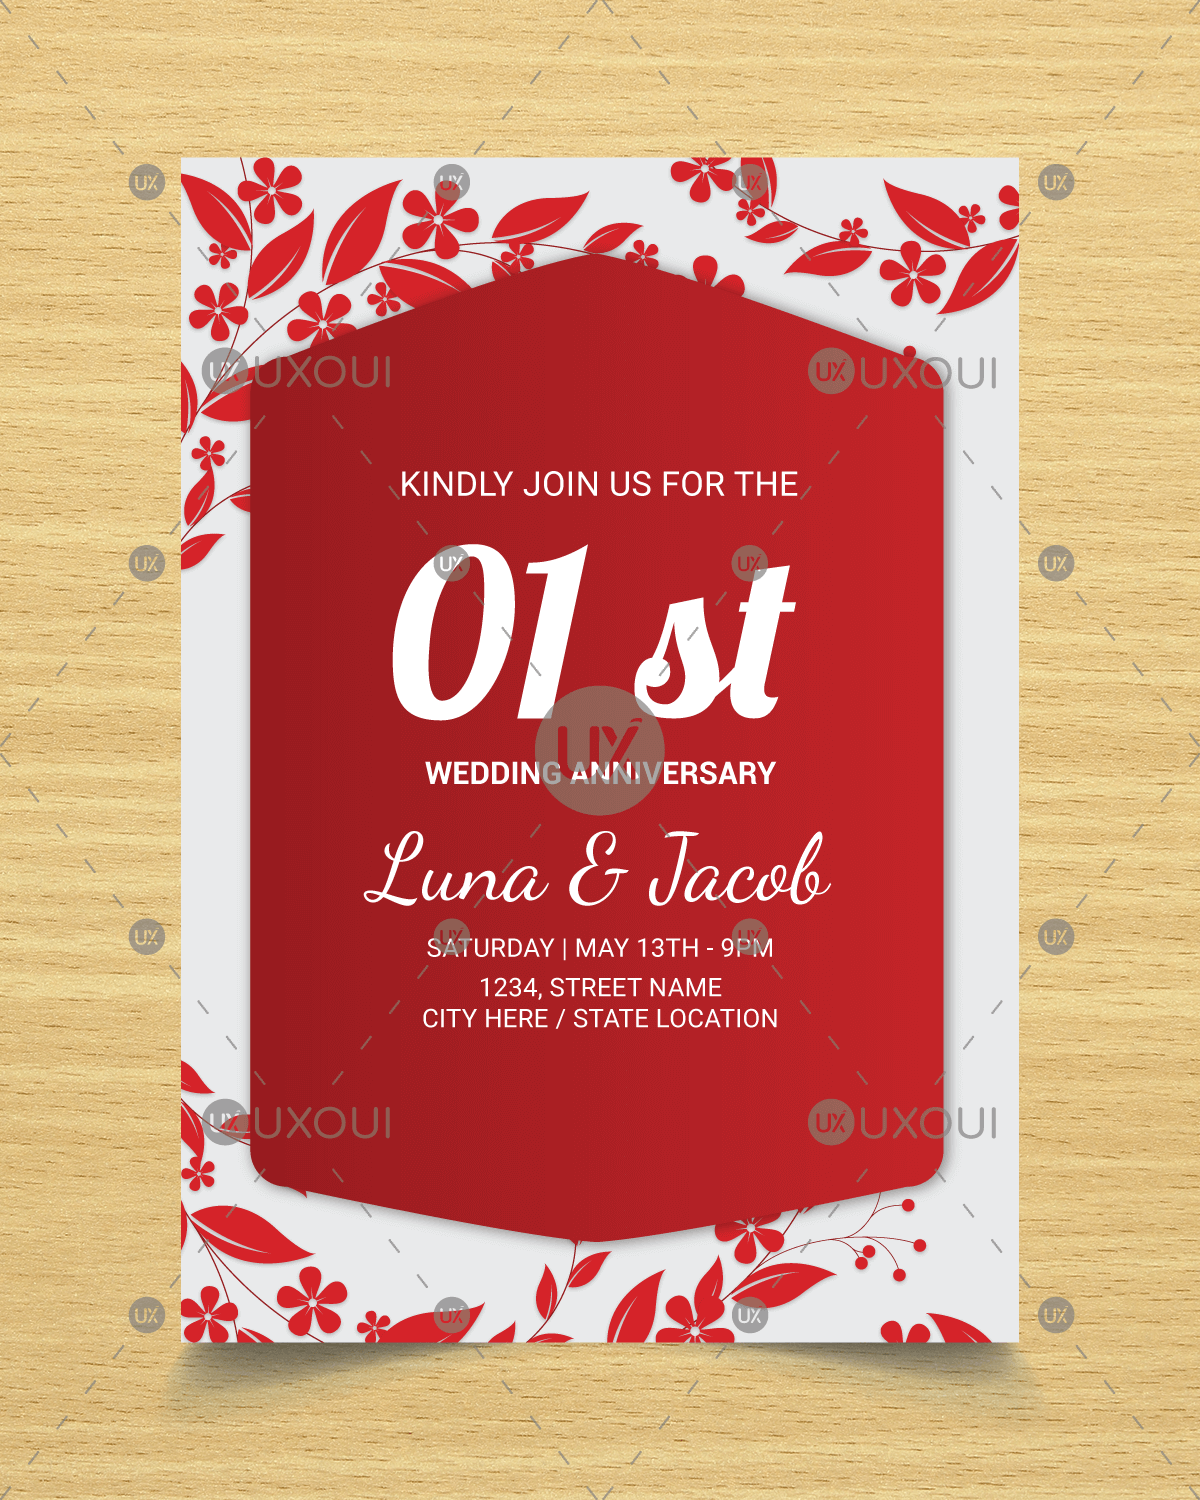 Happy wedding anniversary invitation card design with flowers vector ...